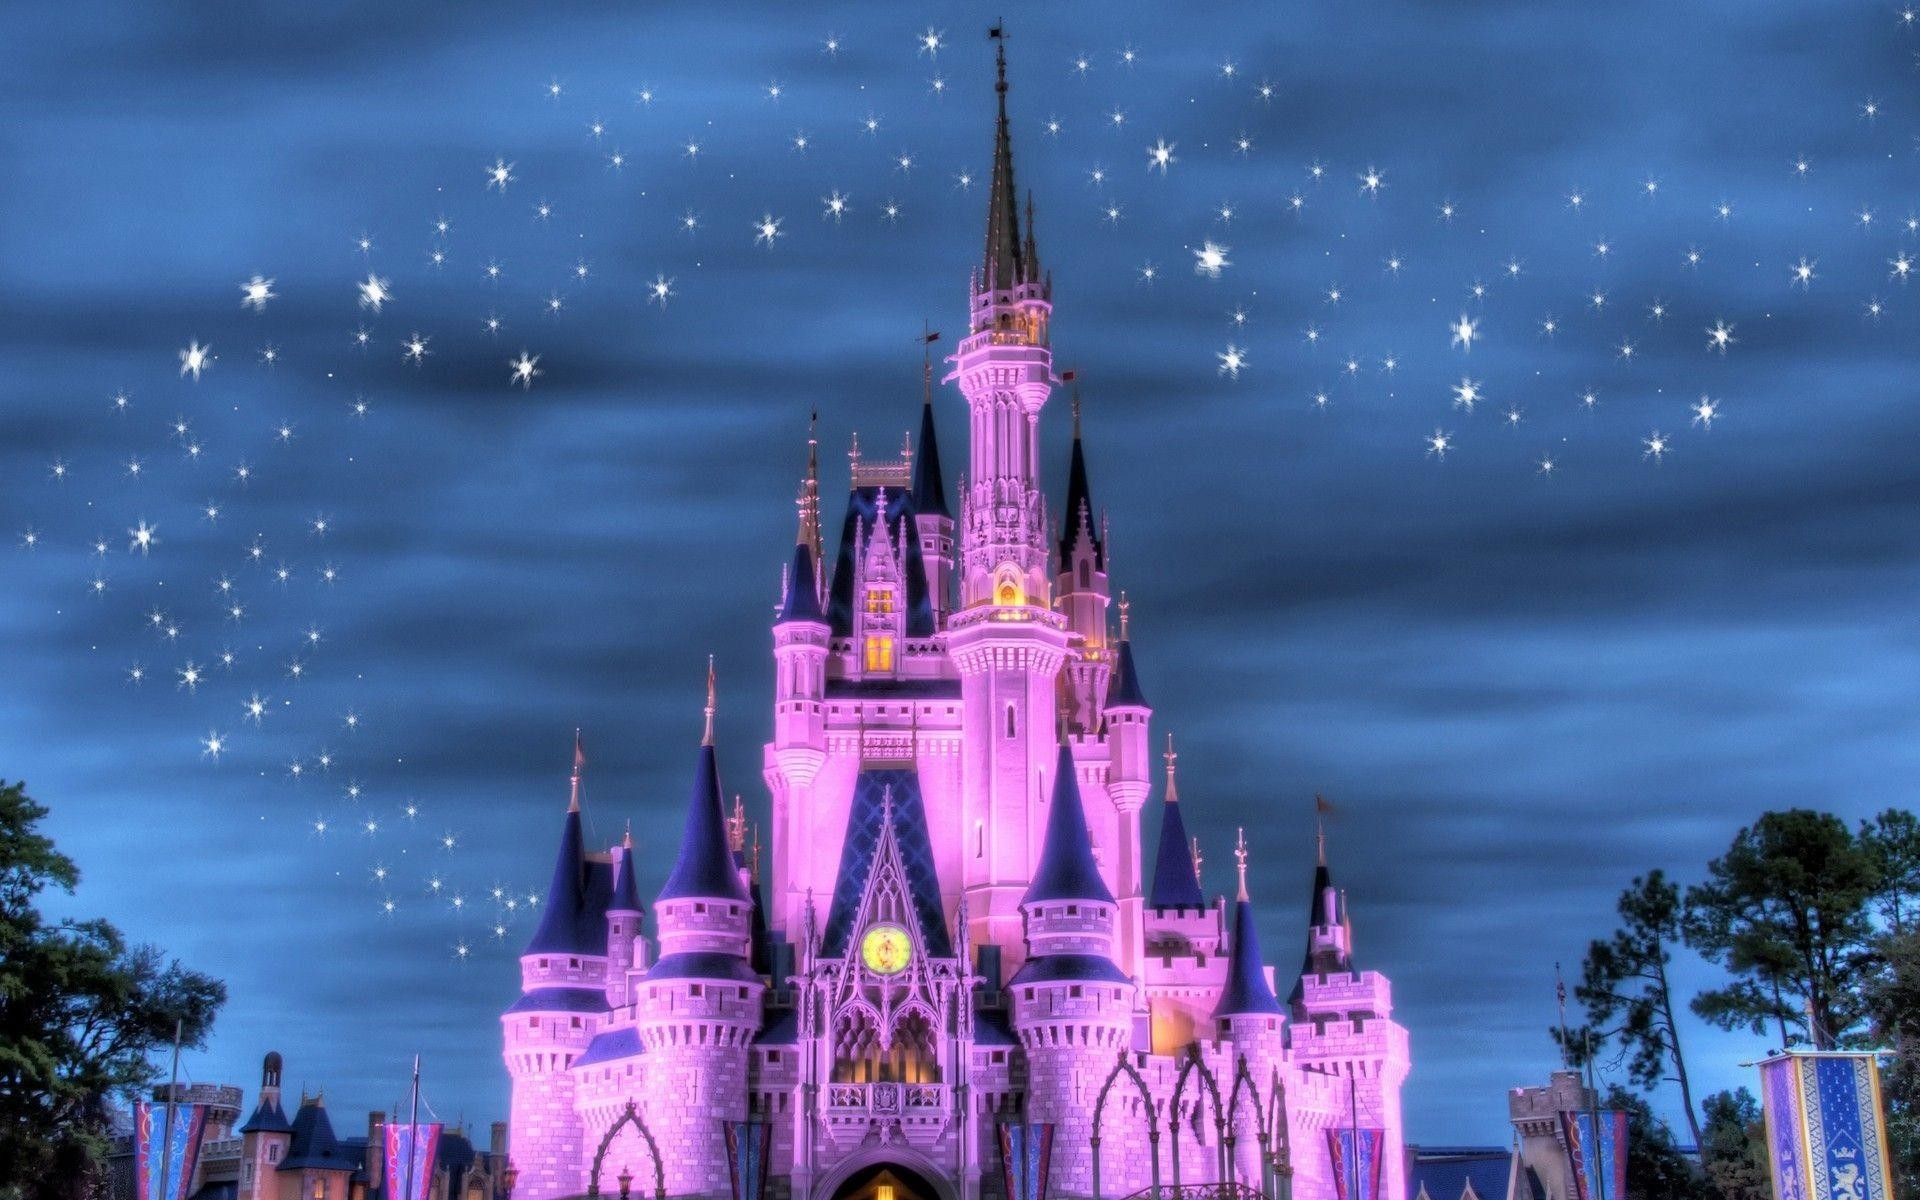 Disney Princess Castle Wallpaper 77 Images